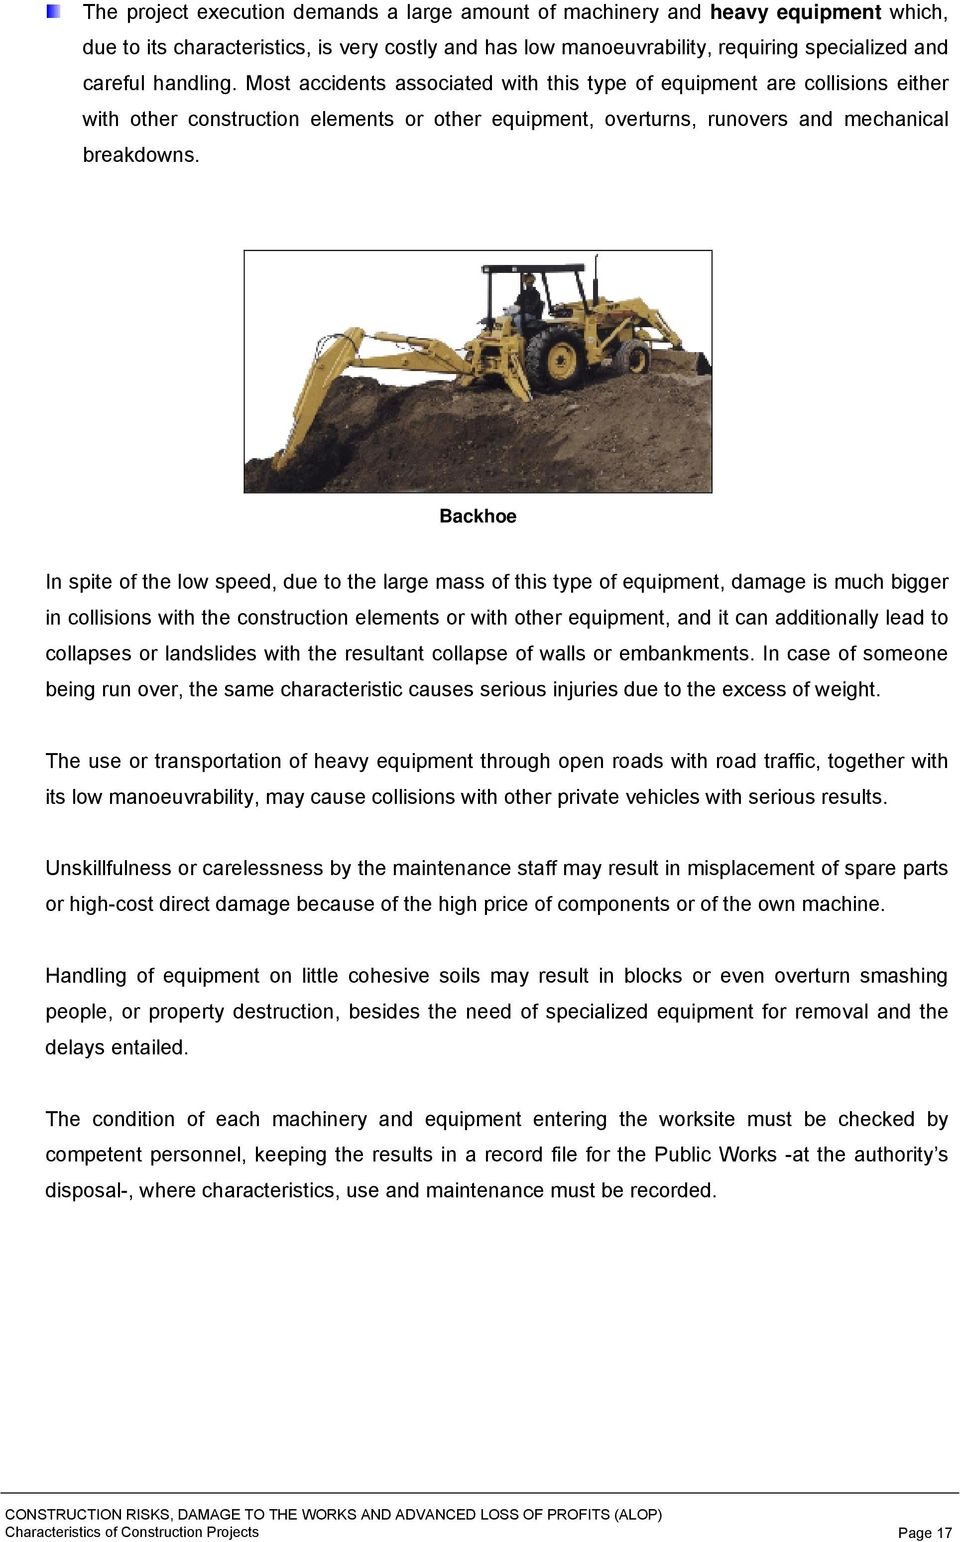 Backhoe In spite of the low speed, due to the large mass of this type of equipment, damage is much bigger in collisions with the construction elements or with other equipment, and it can additionally